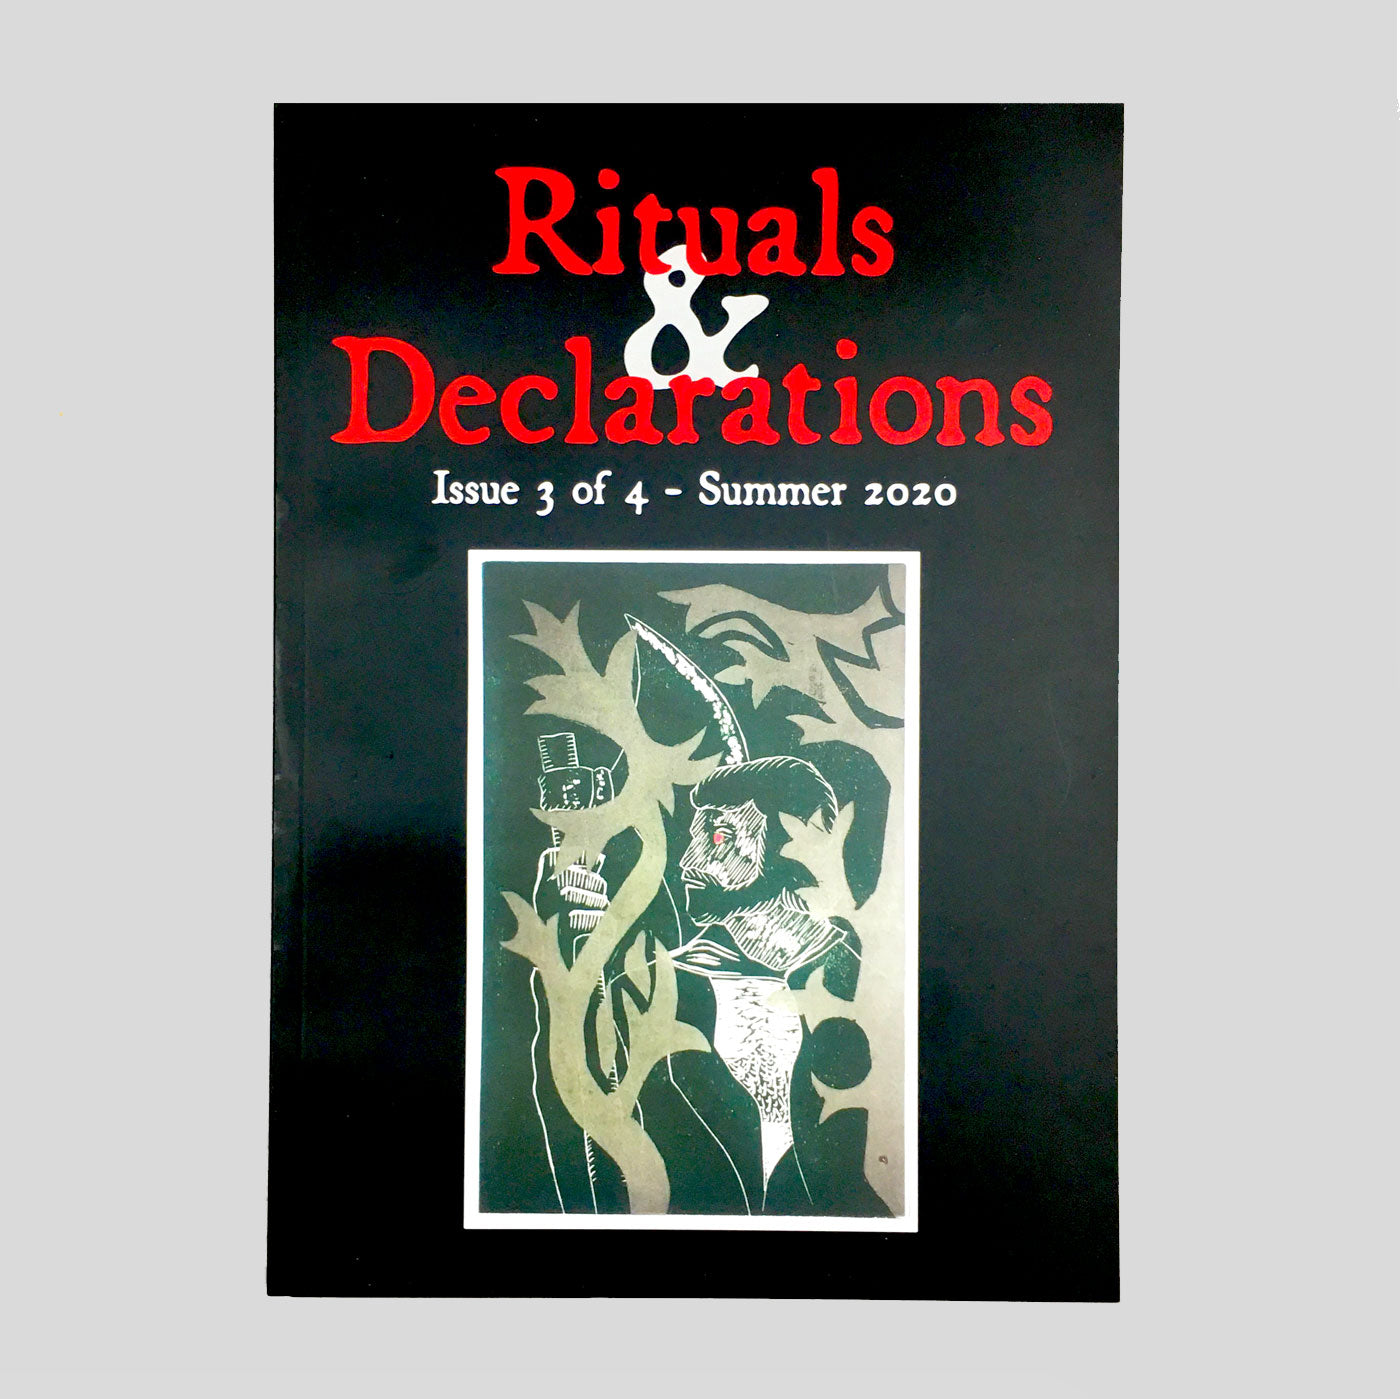 Rituals & Declarations - Summer 2020 (issue 3 of 4) - Colours May Vary